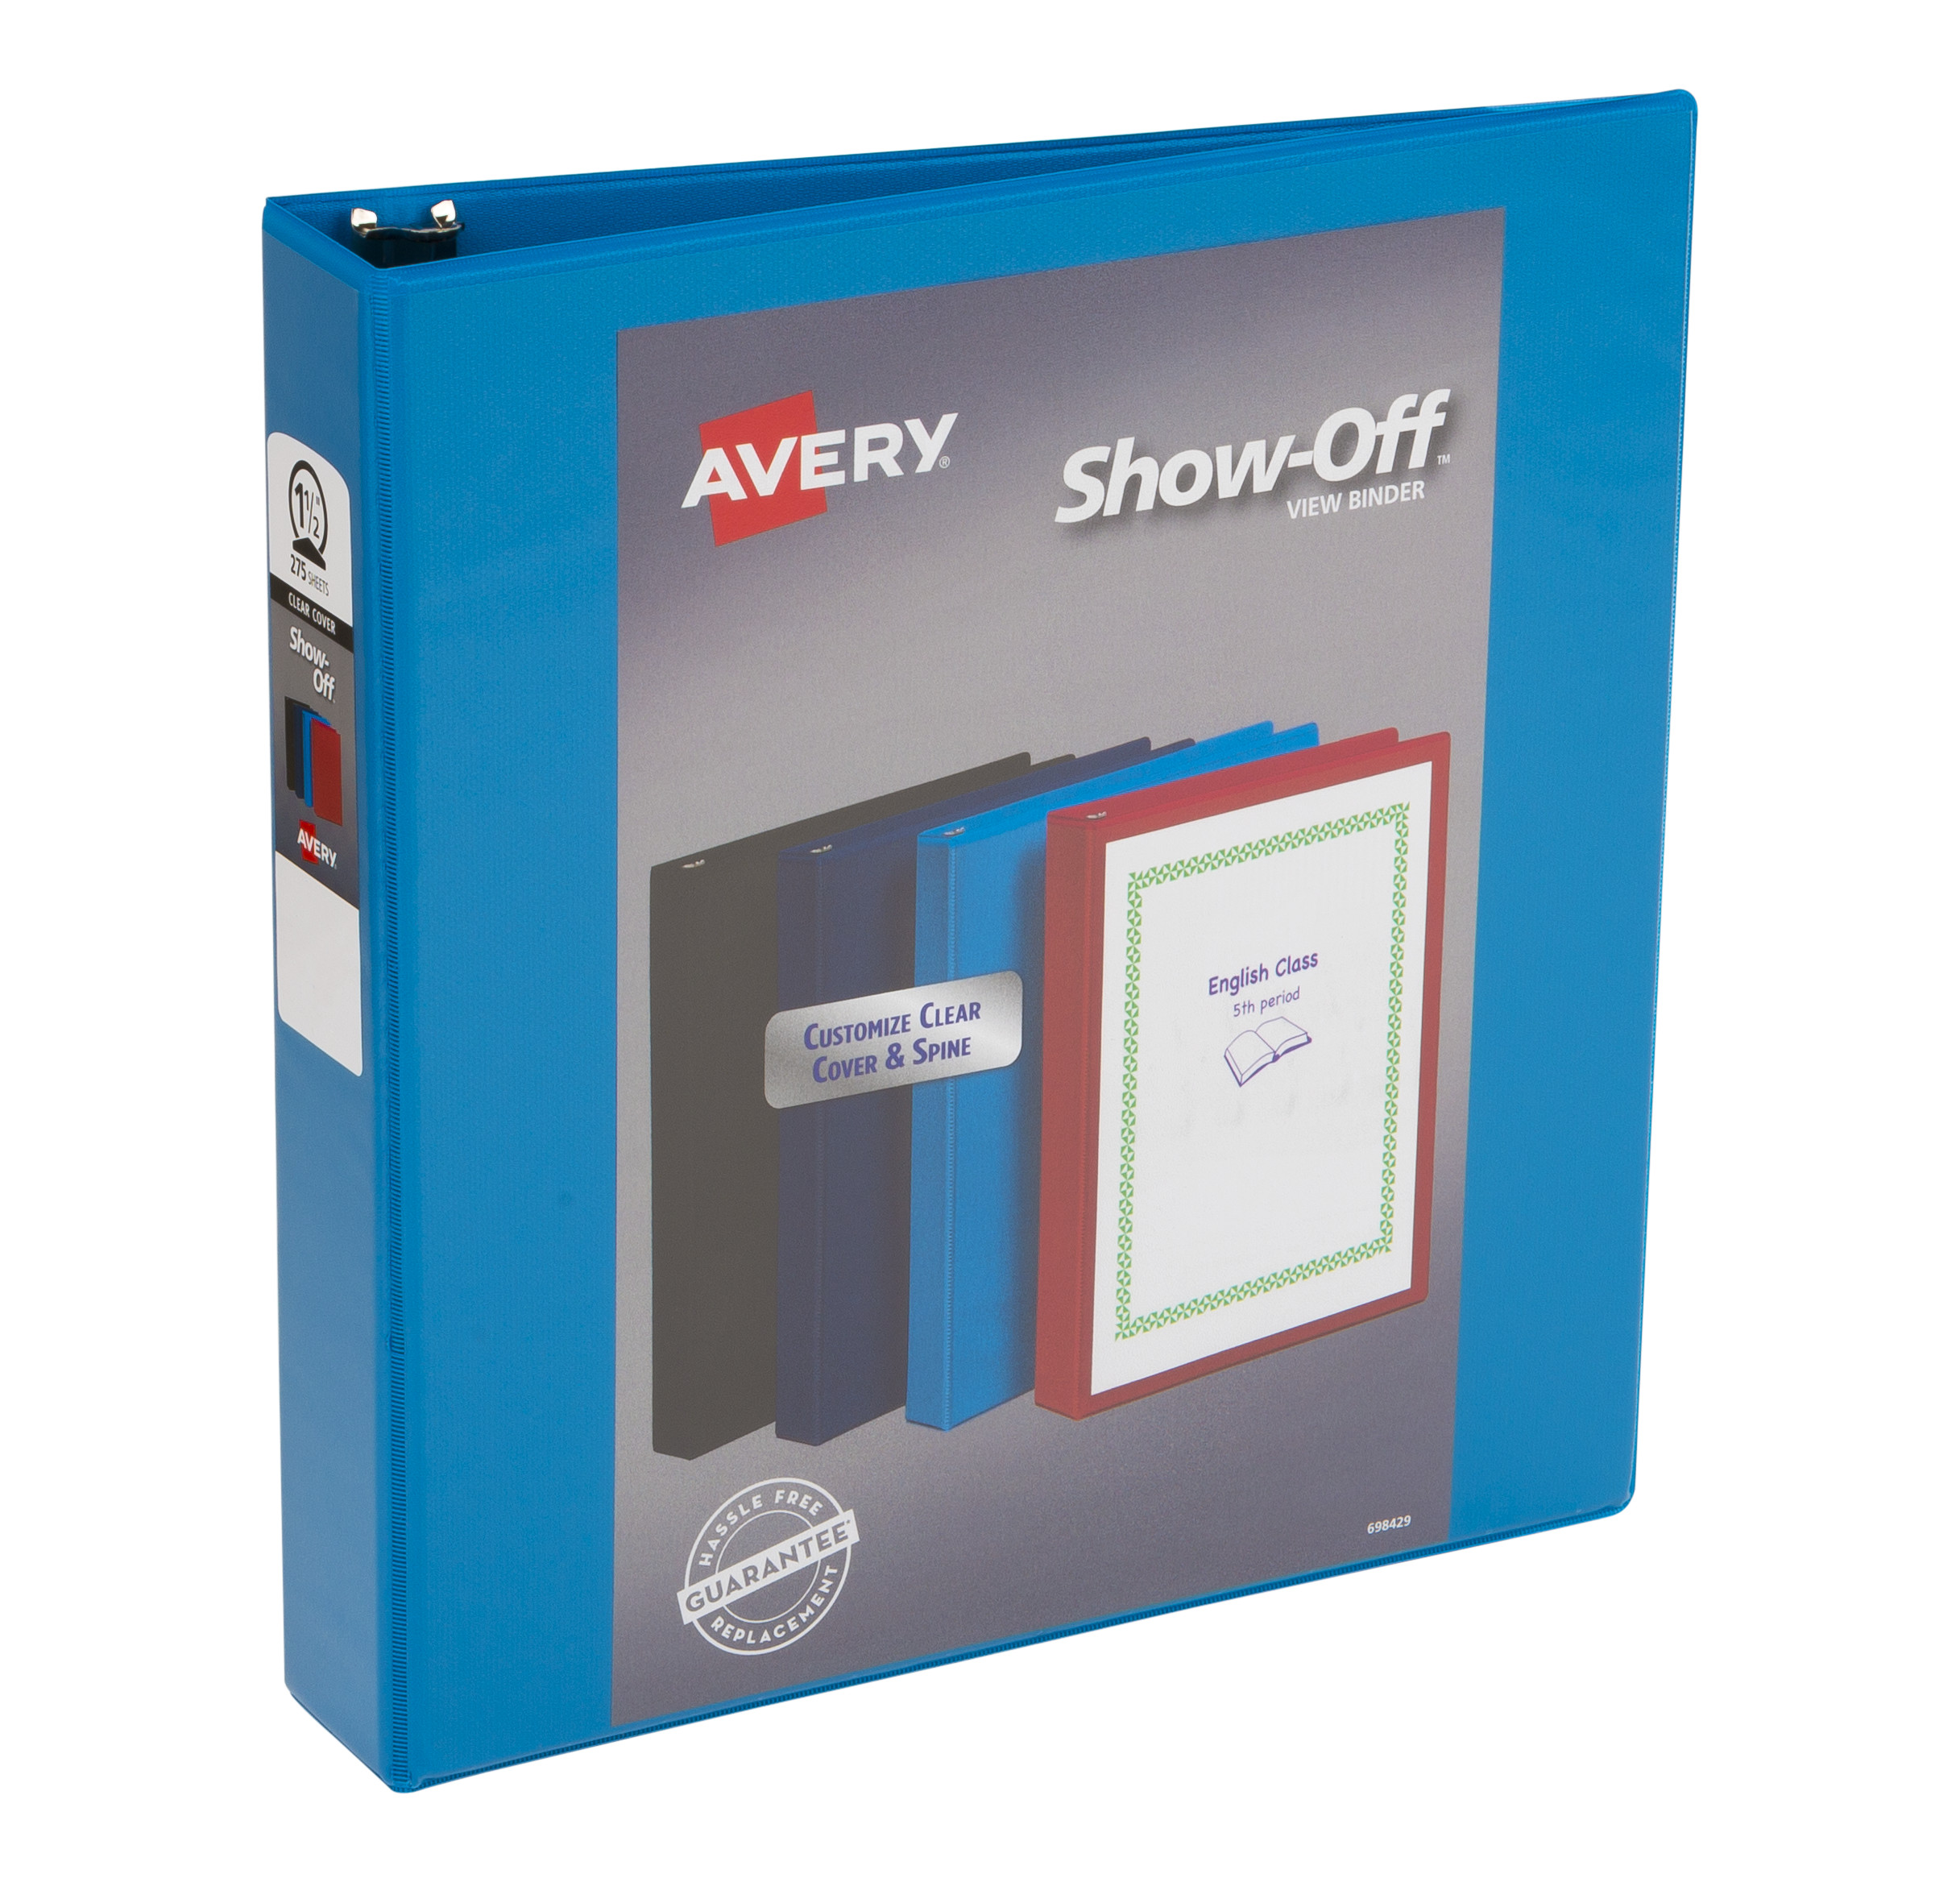 "Avery Show Off View Binders, 1-1/2"" Round Rings, 275-Sheet Capacity, Assorted Colors (12058)"